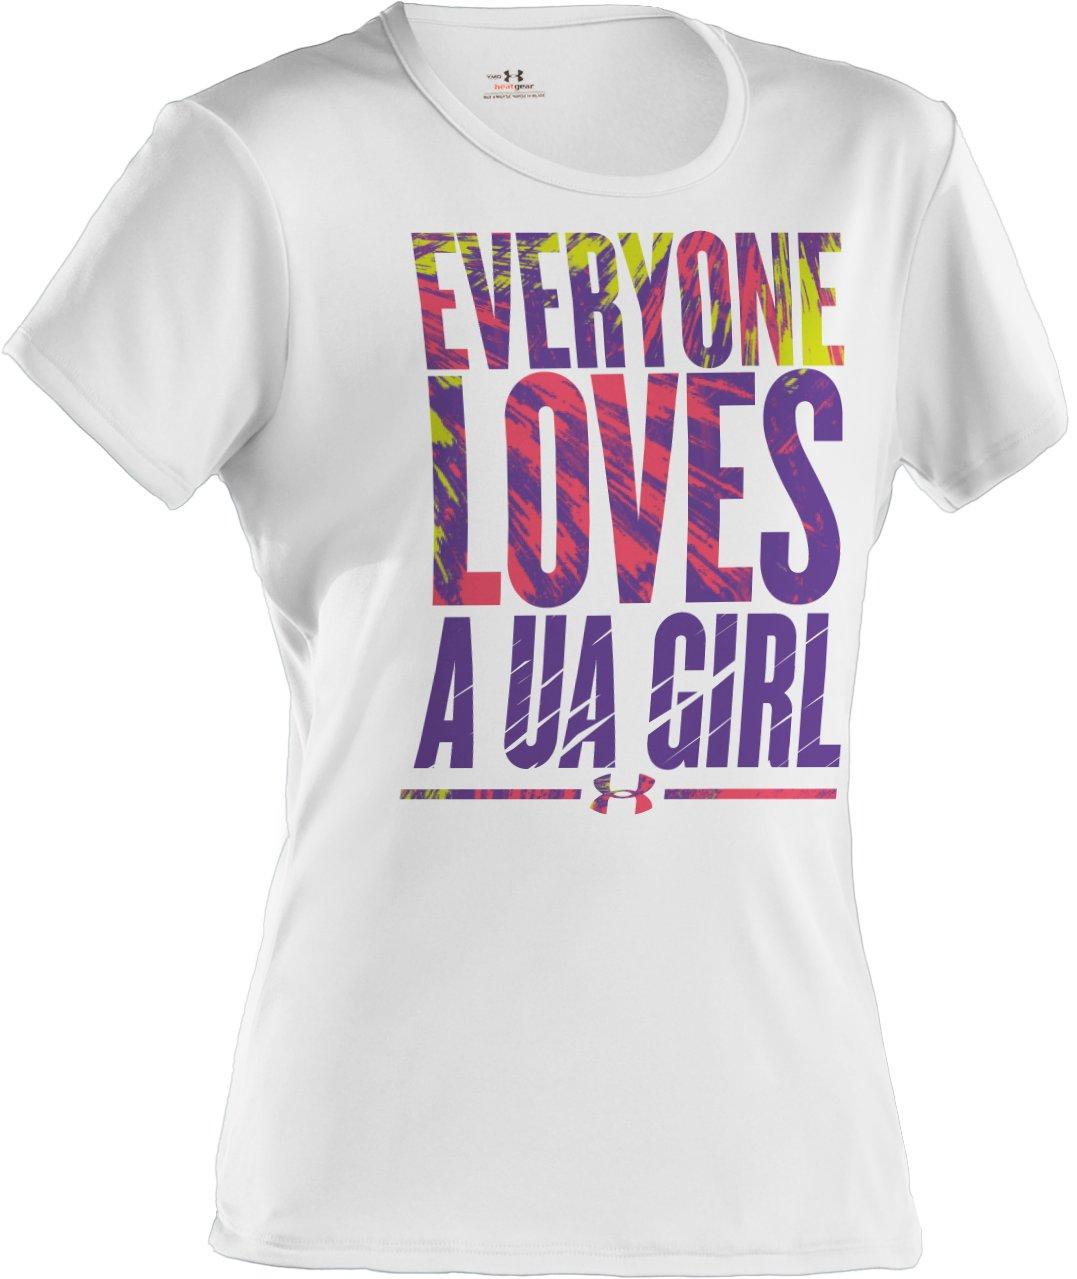 Girls' UA Everyone Loves T-Shirt, White, zoomed image